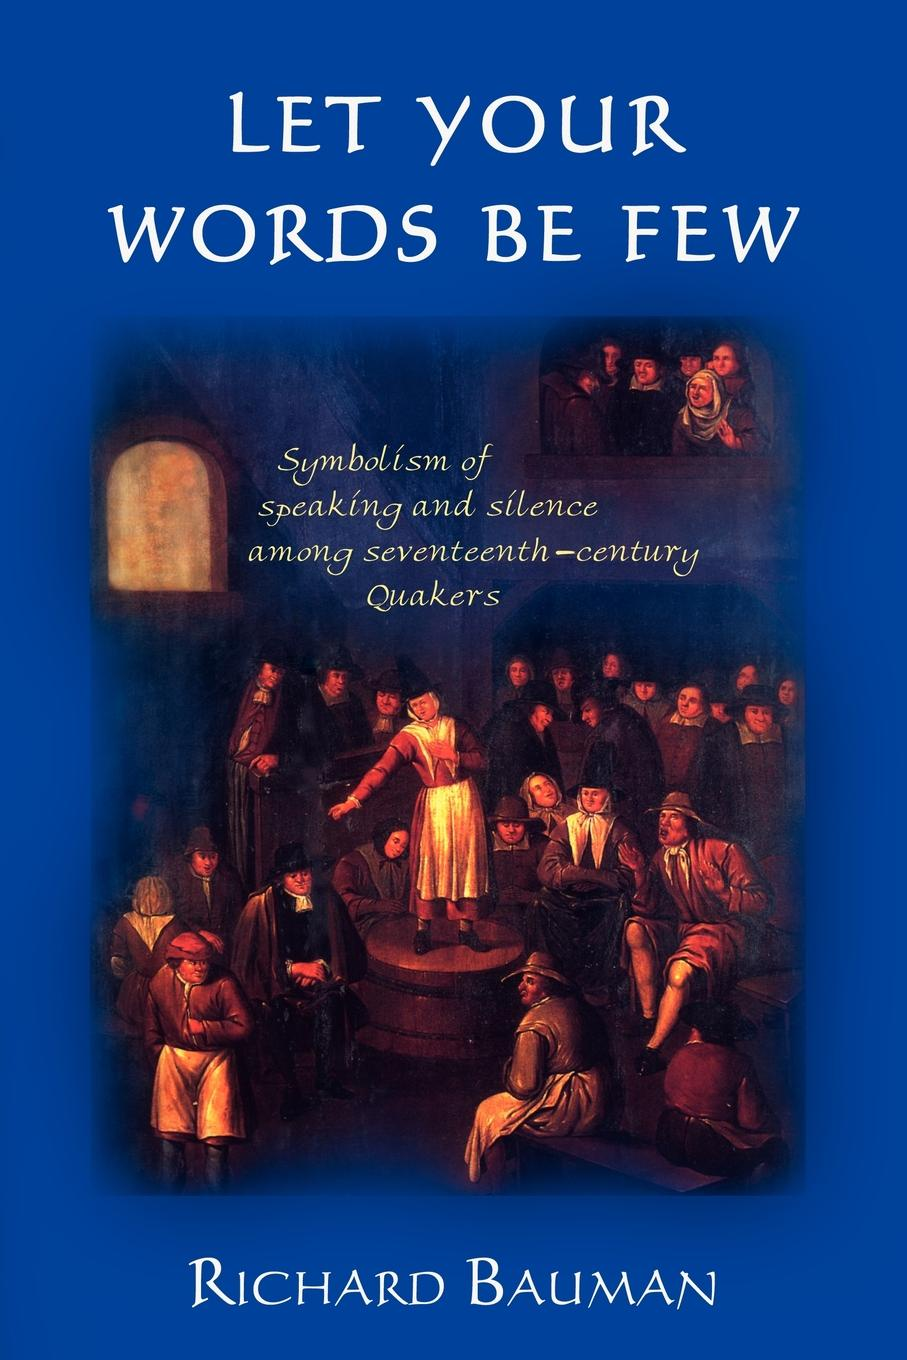 Richard Bauman Let Your Words Be Few. Symbolism of Speaking and Silence Among Seventeenth-Century Quakers